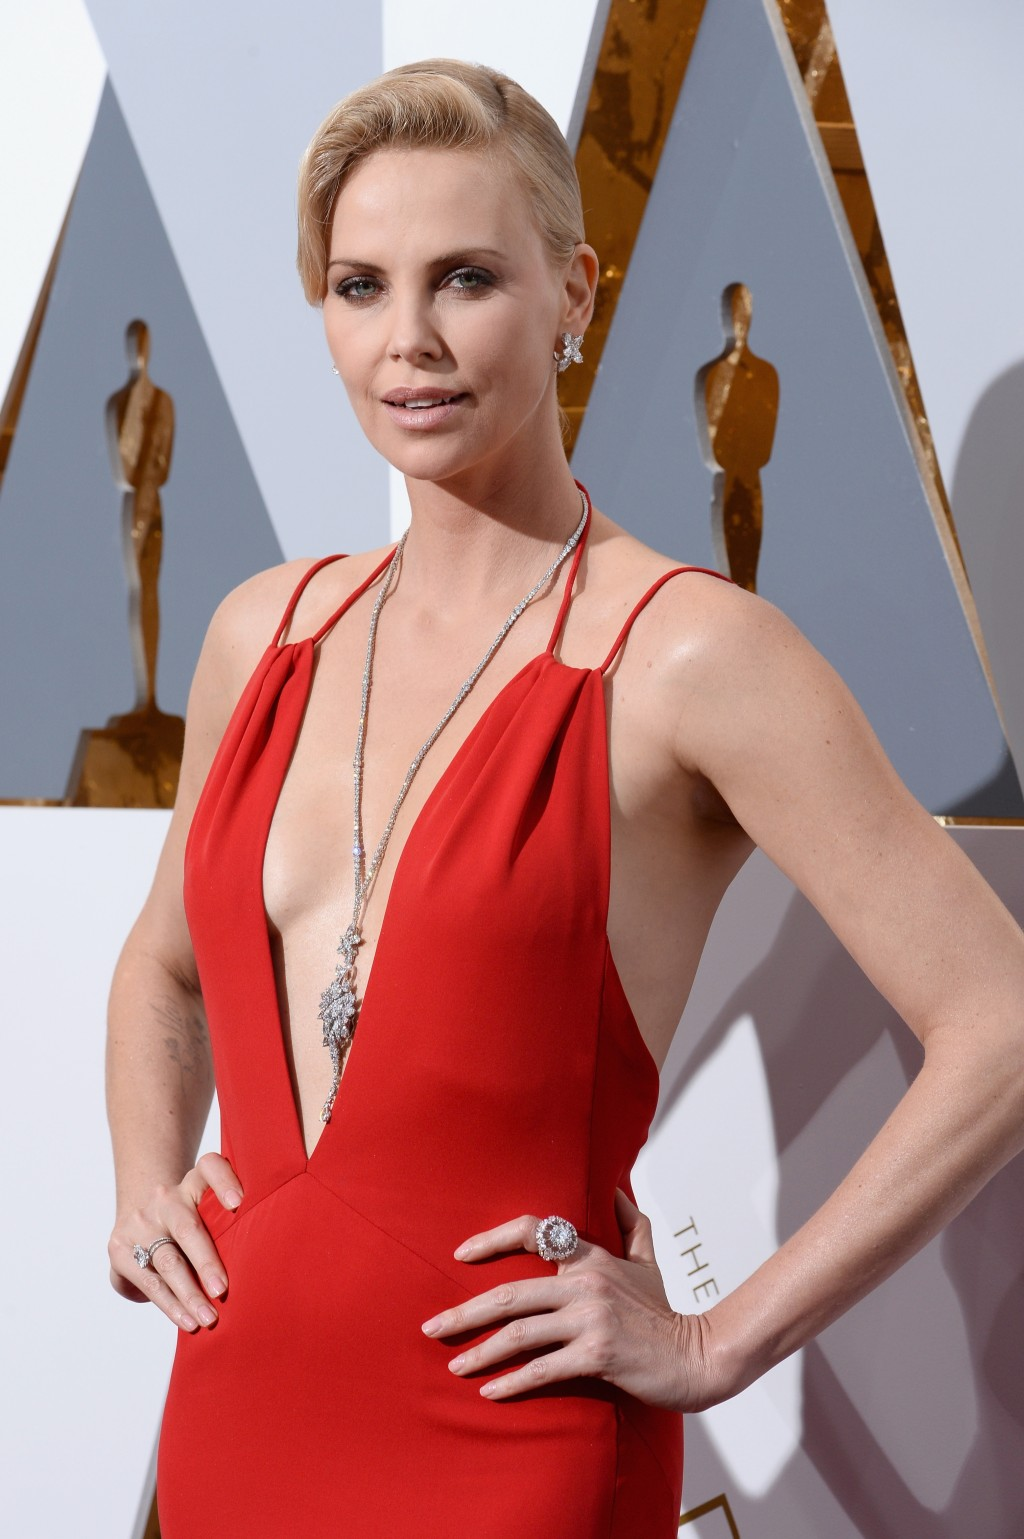 The Most Dazzling Jewelry Pieces of the 2016 Oscars